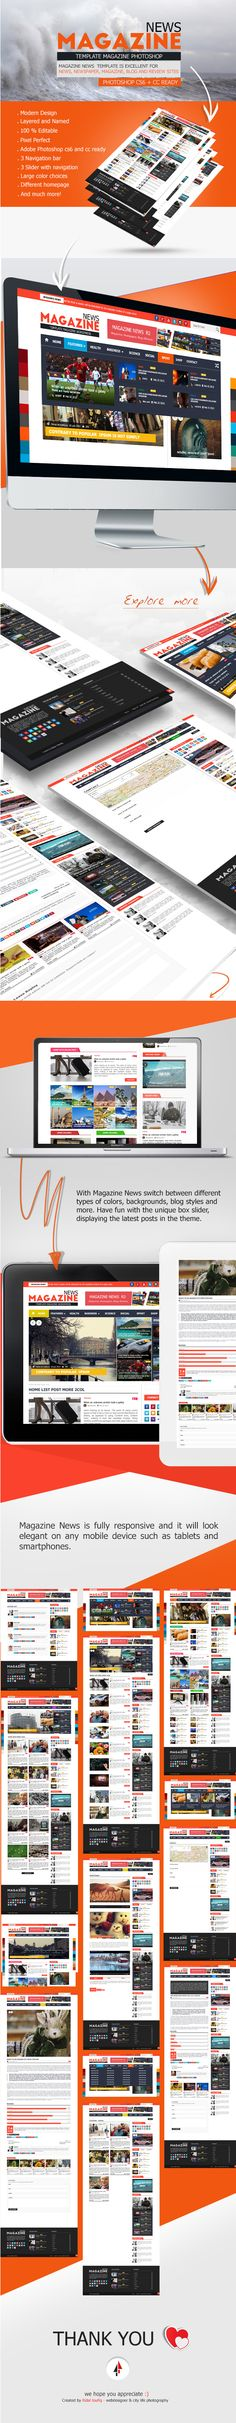 Behance :: Editing Magazine News is excellent for news, magazine, blog...